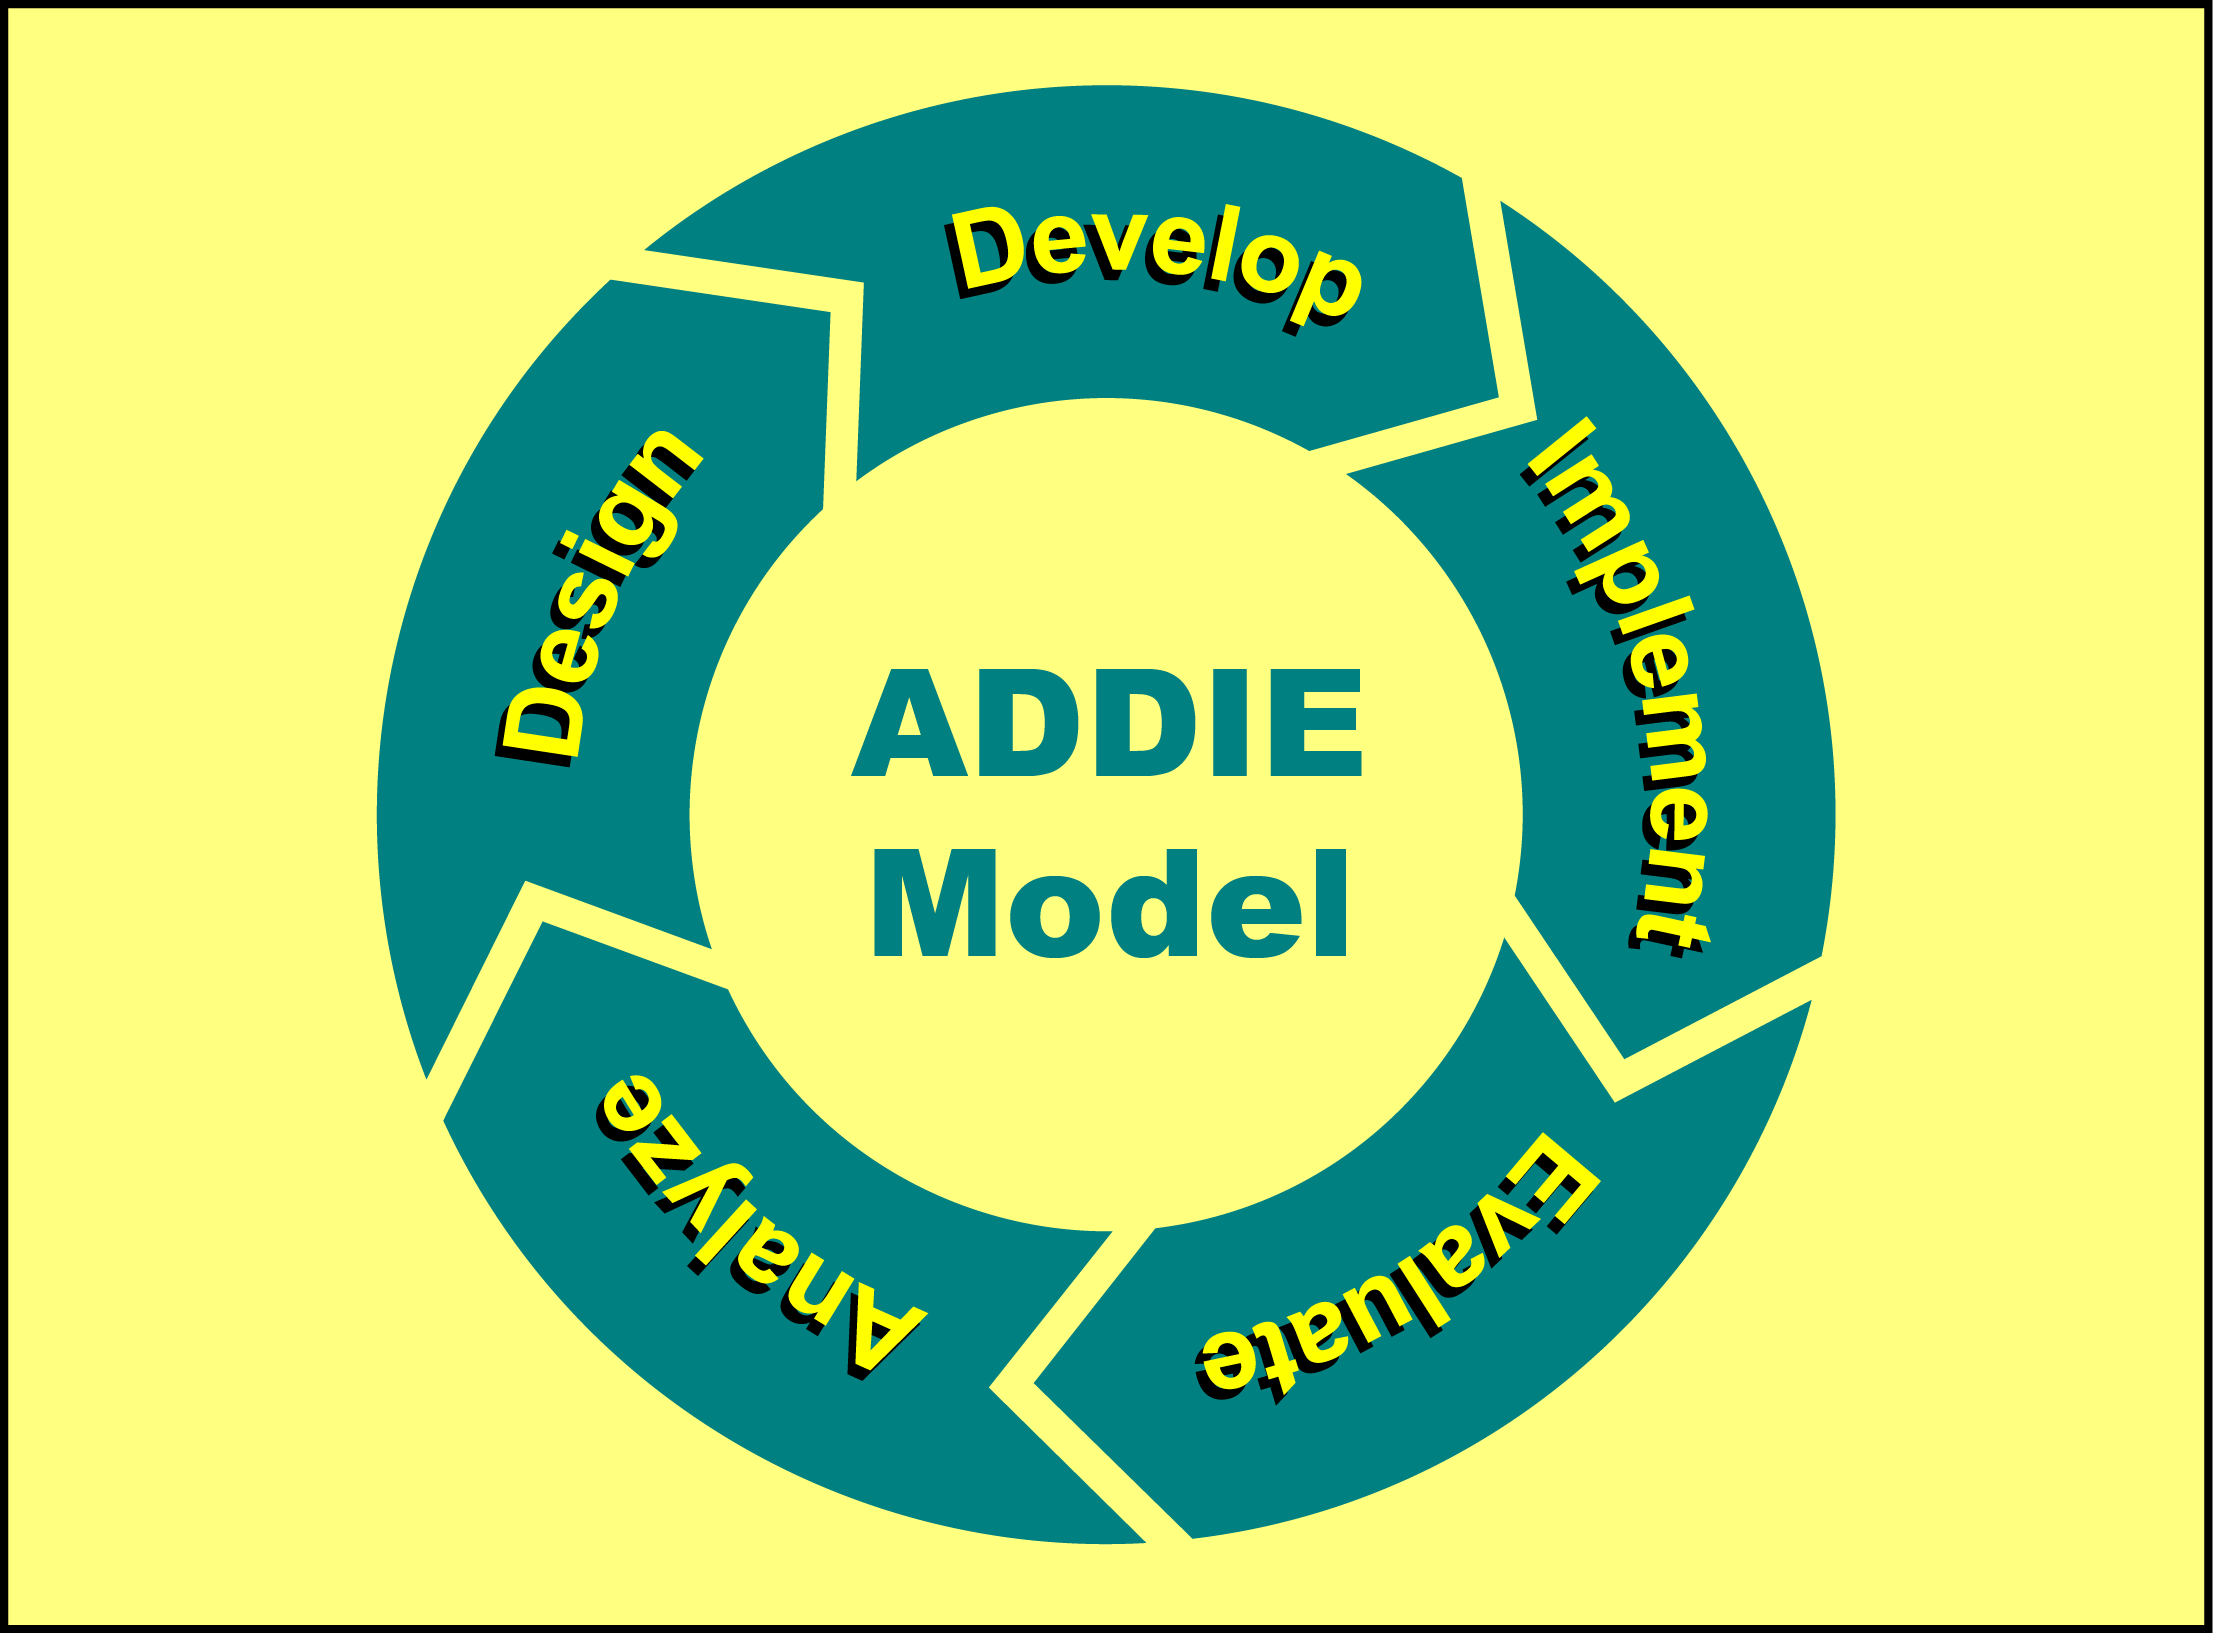 training design model Training design provides the means for assessing a company, team or individual needs and creating learning solutions to reach goals a good design for training includes multiple types of learning, actionable plans and a clear method of delivering lessons.